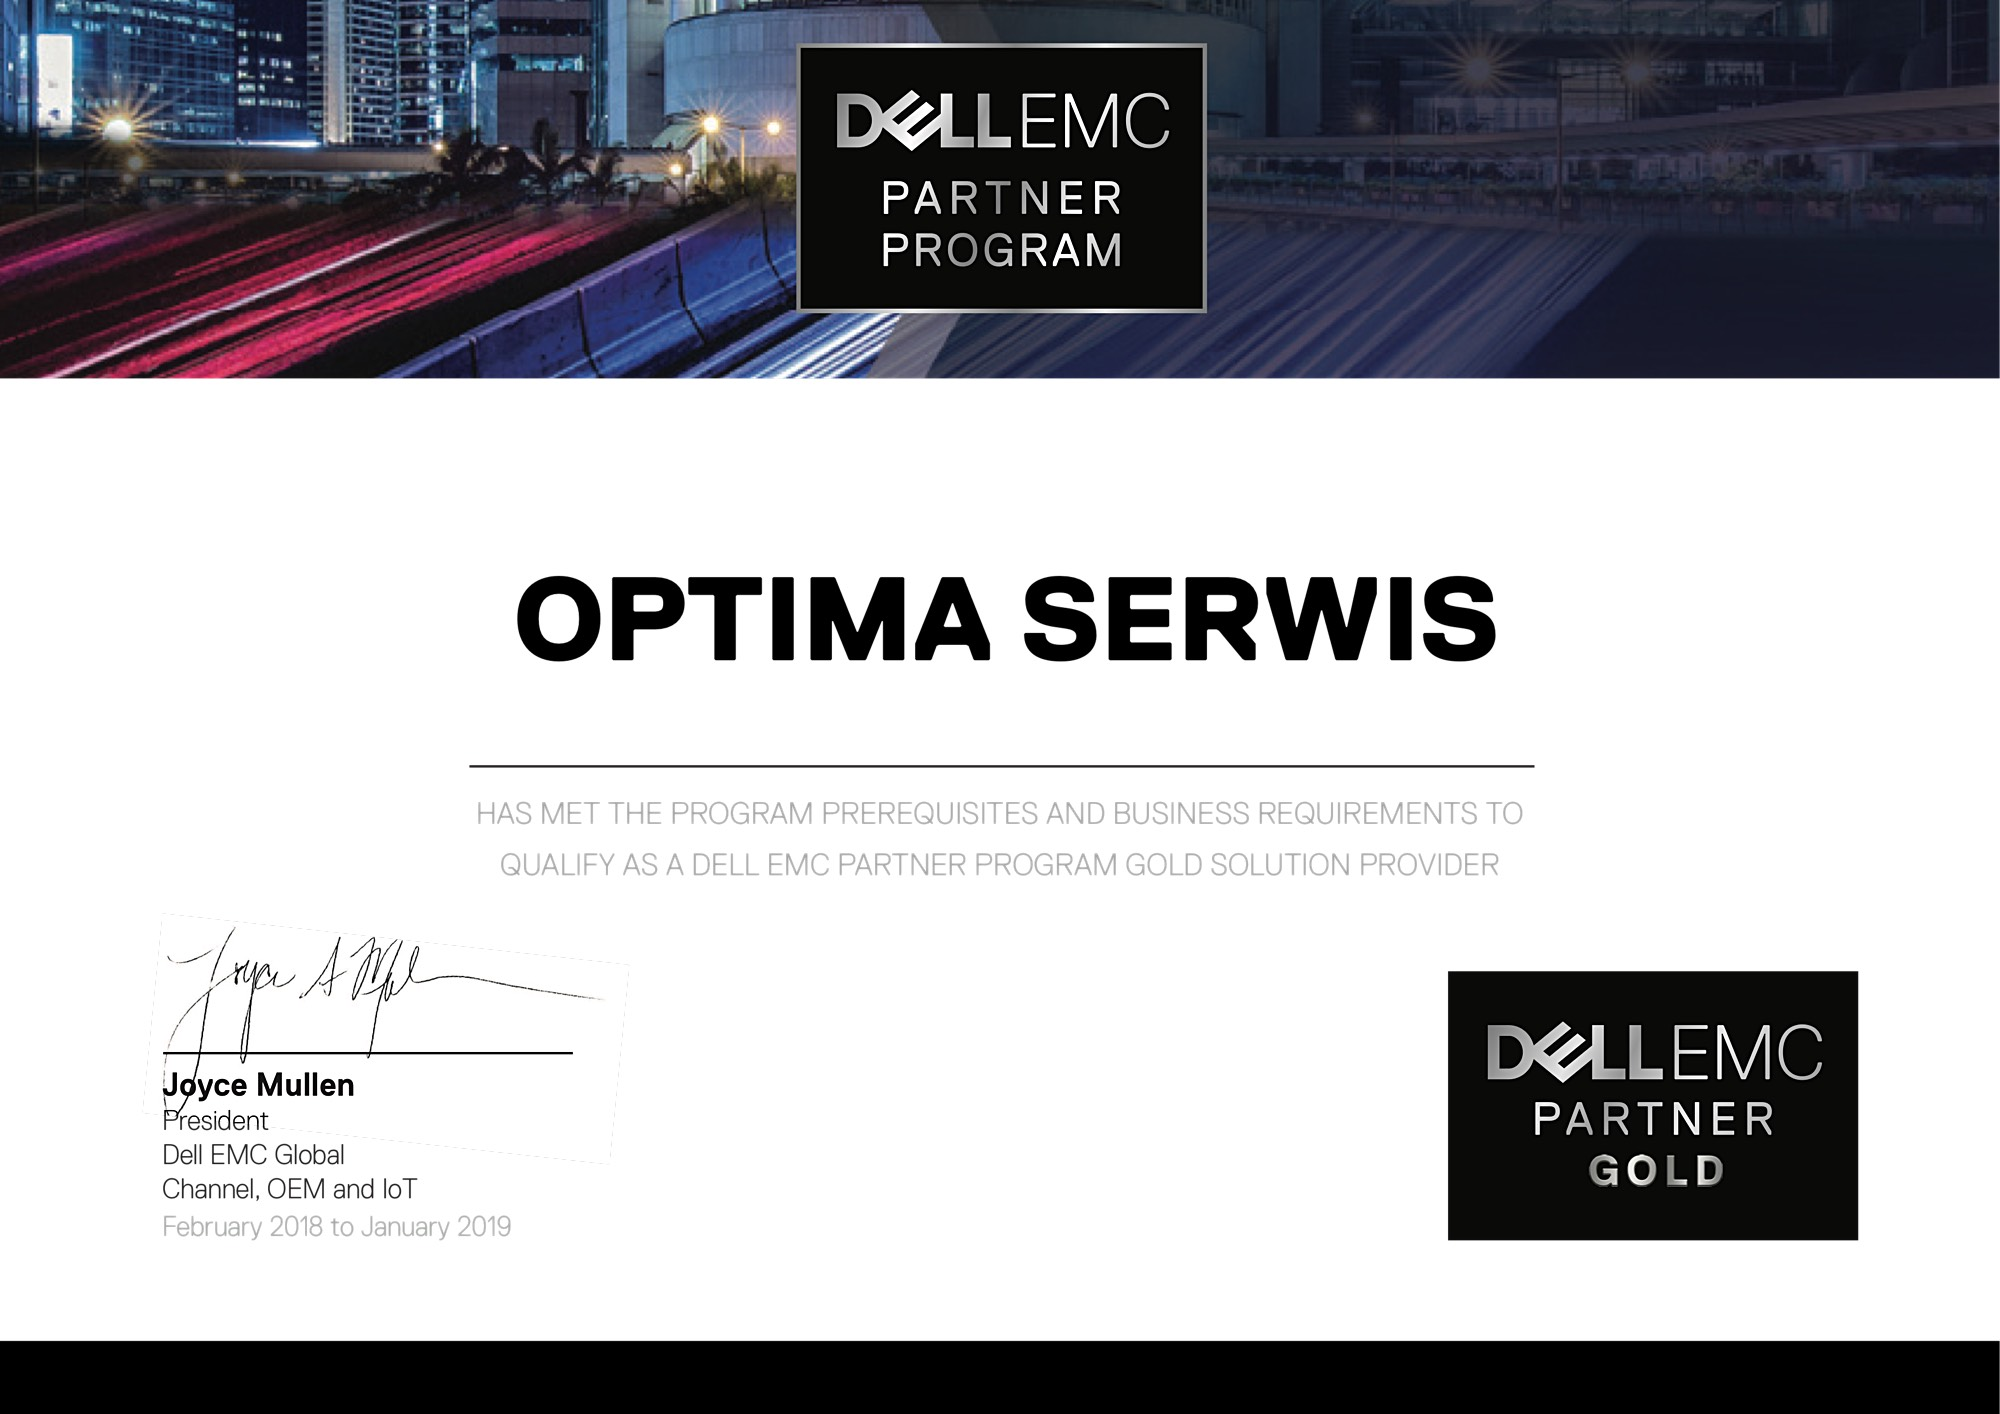 Dell_EMC_Partner_Program_Certificate.jpg